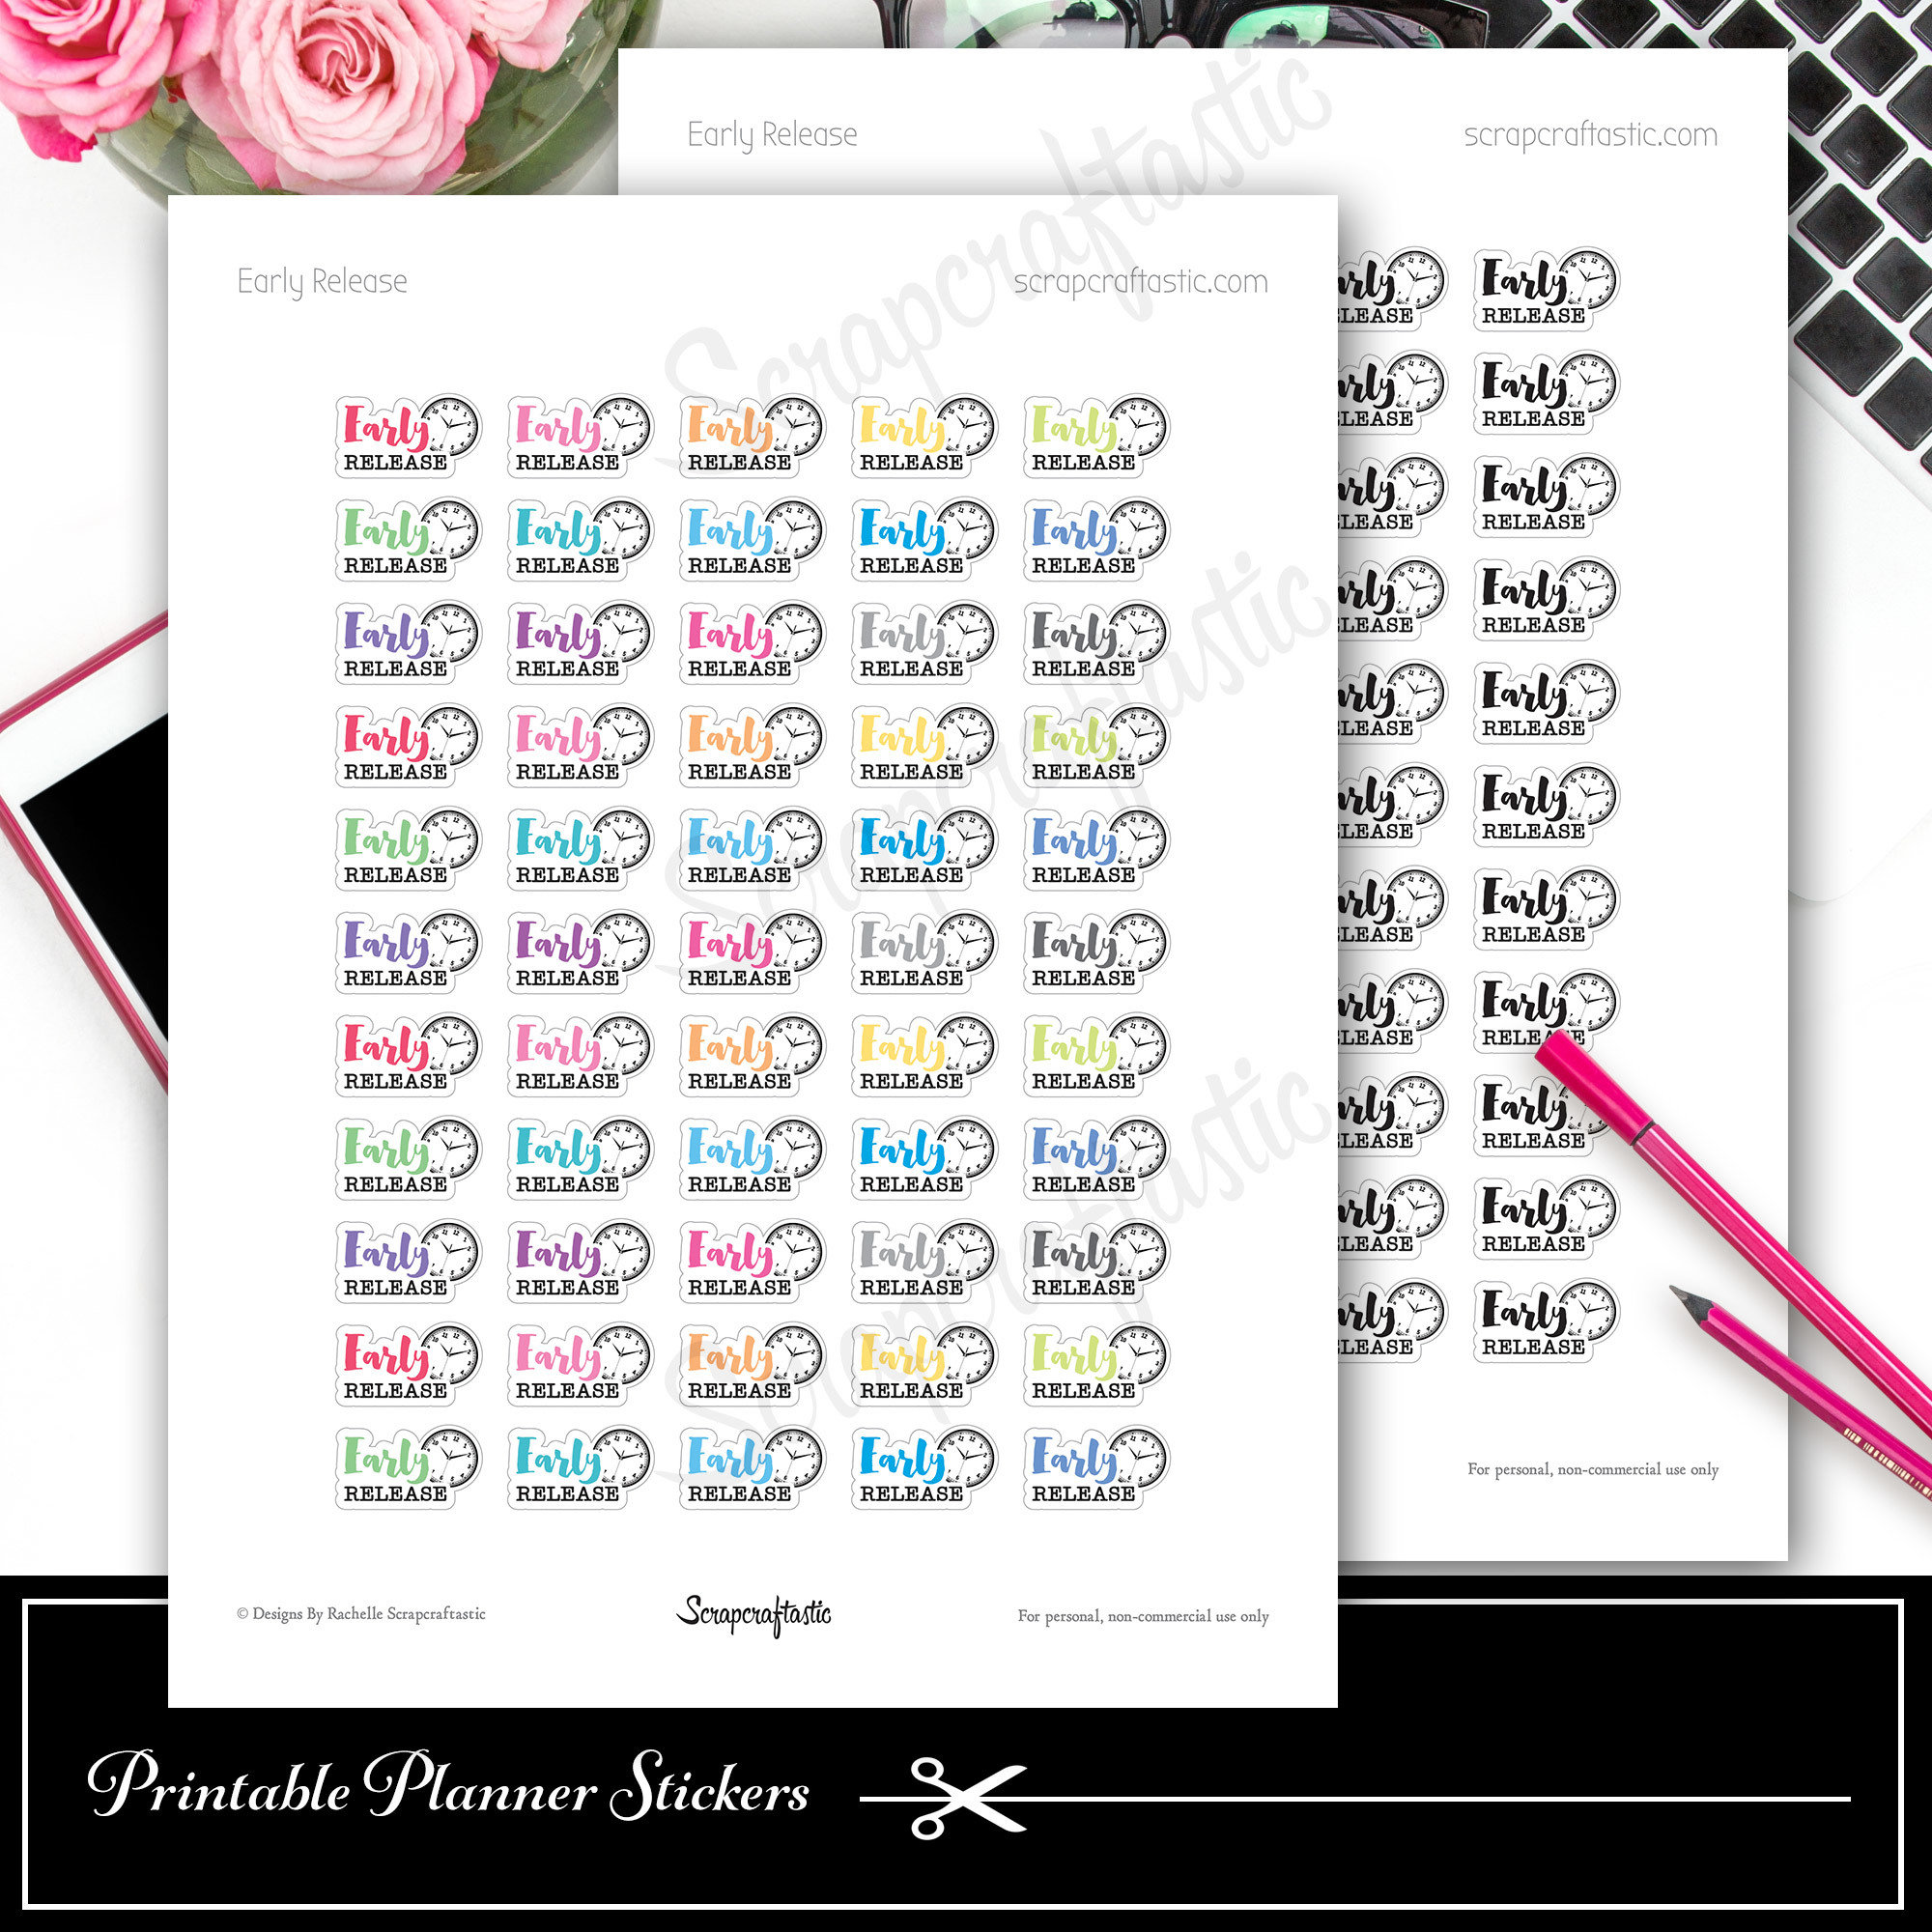 Early Release School Printable Planner Stickers for Decor Planning in Paper Planners, Traveler's Notebooks, A5 Planners, Personal Planners 03015